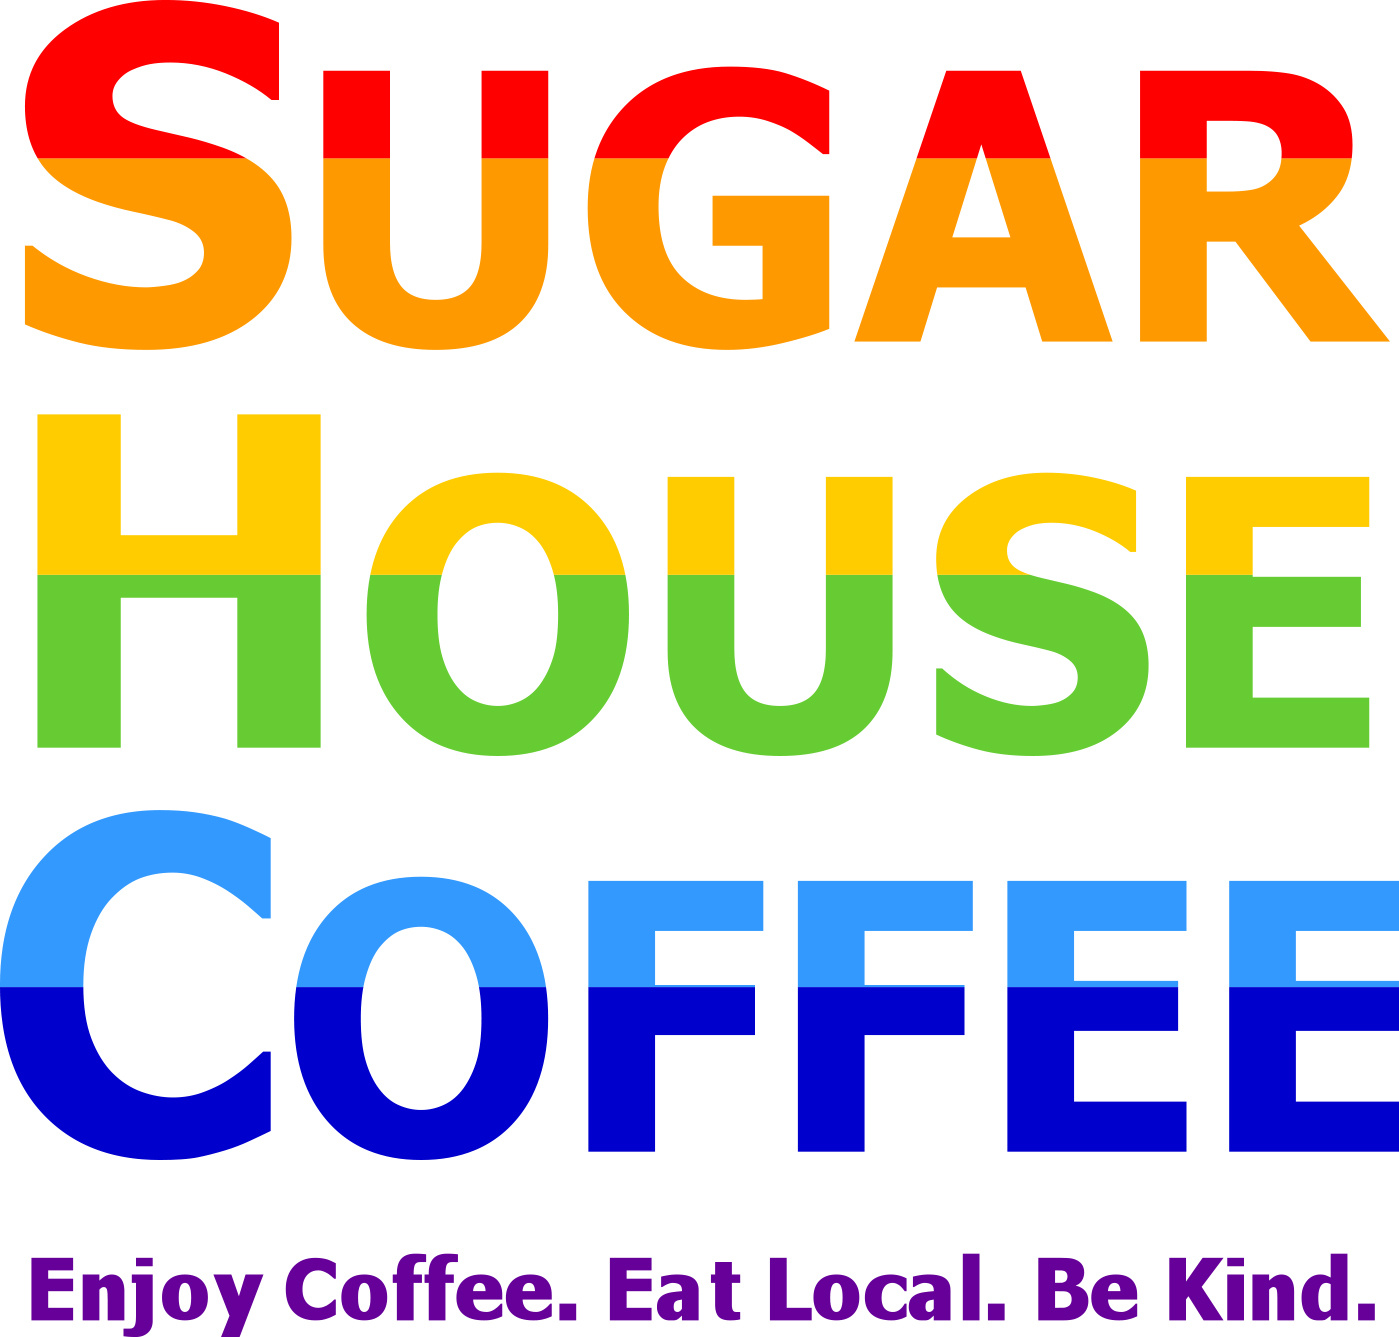 Sugarhouse Coffee.jpg